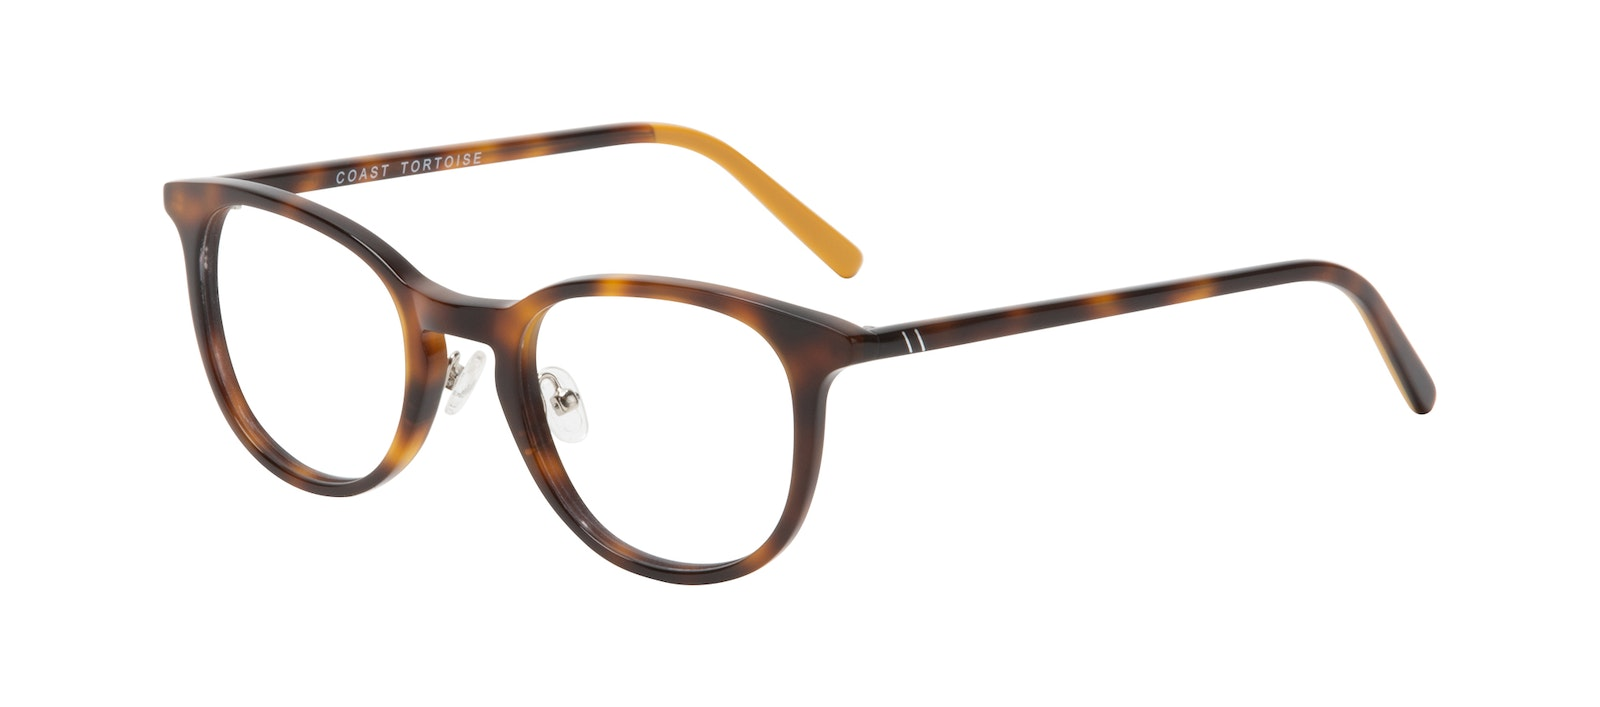 Affordable Fashion Glasses Round Eyeglasses Men Coast Tortoise Tilt